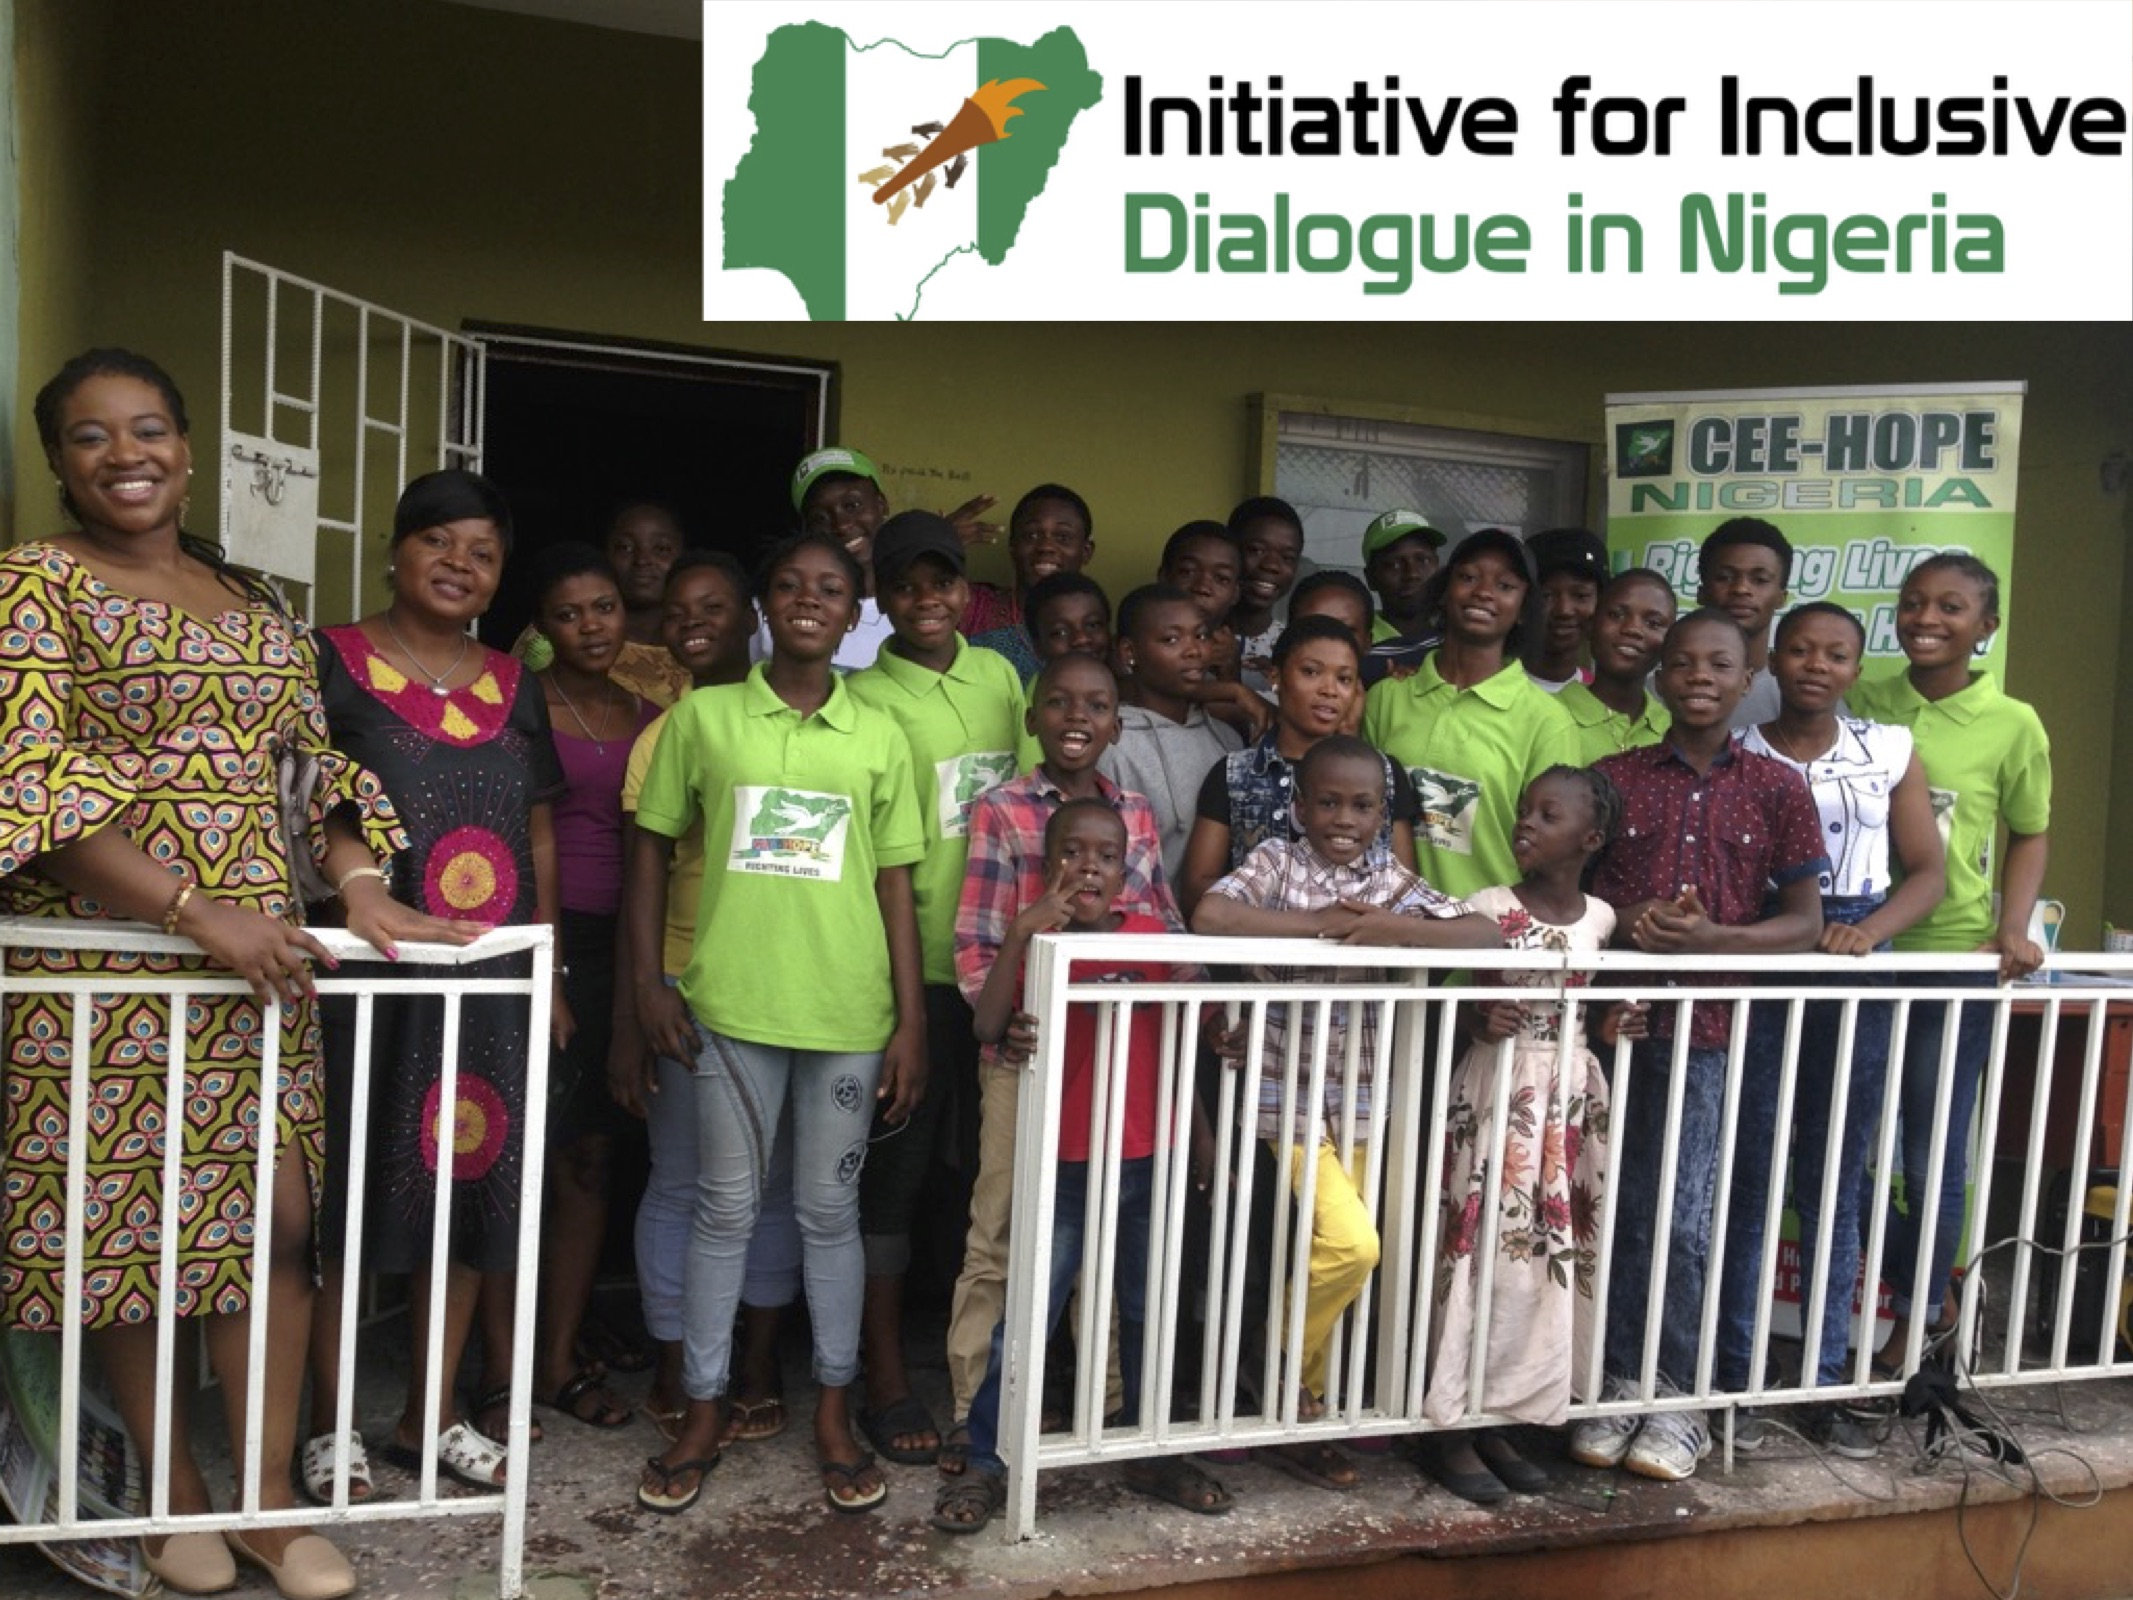 From right - IIDN President, Chiamaka Mogo, CEE-Hope Founder, Betty Abah, with children and youths in attendance from Makoko, Lagos State.